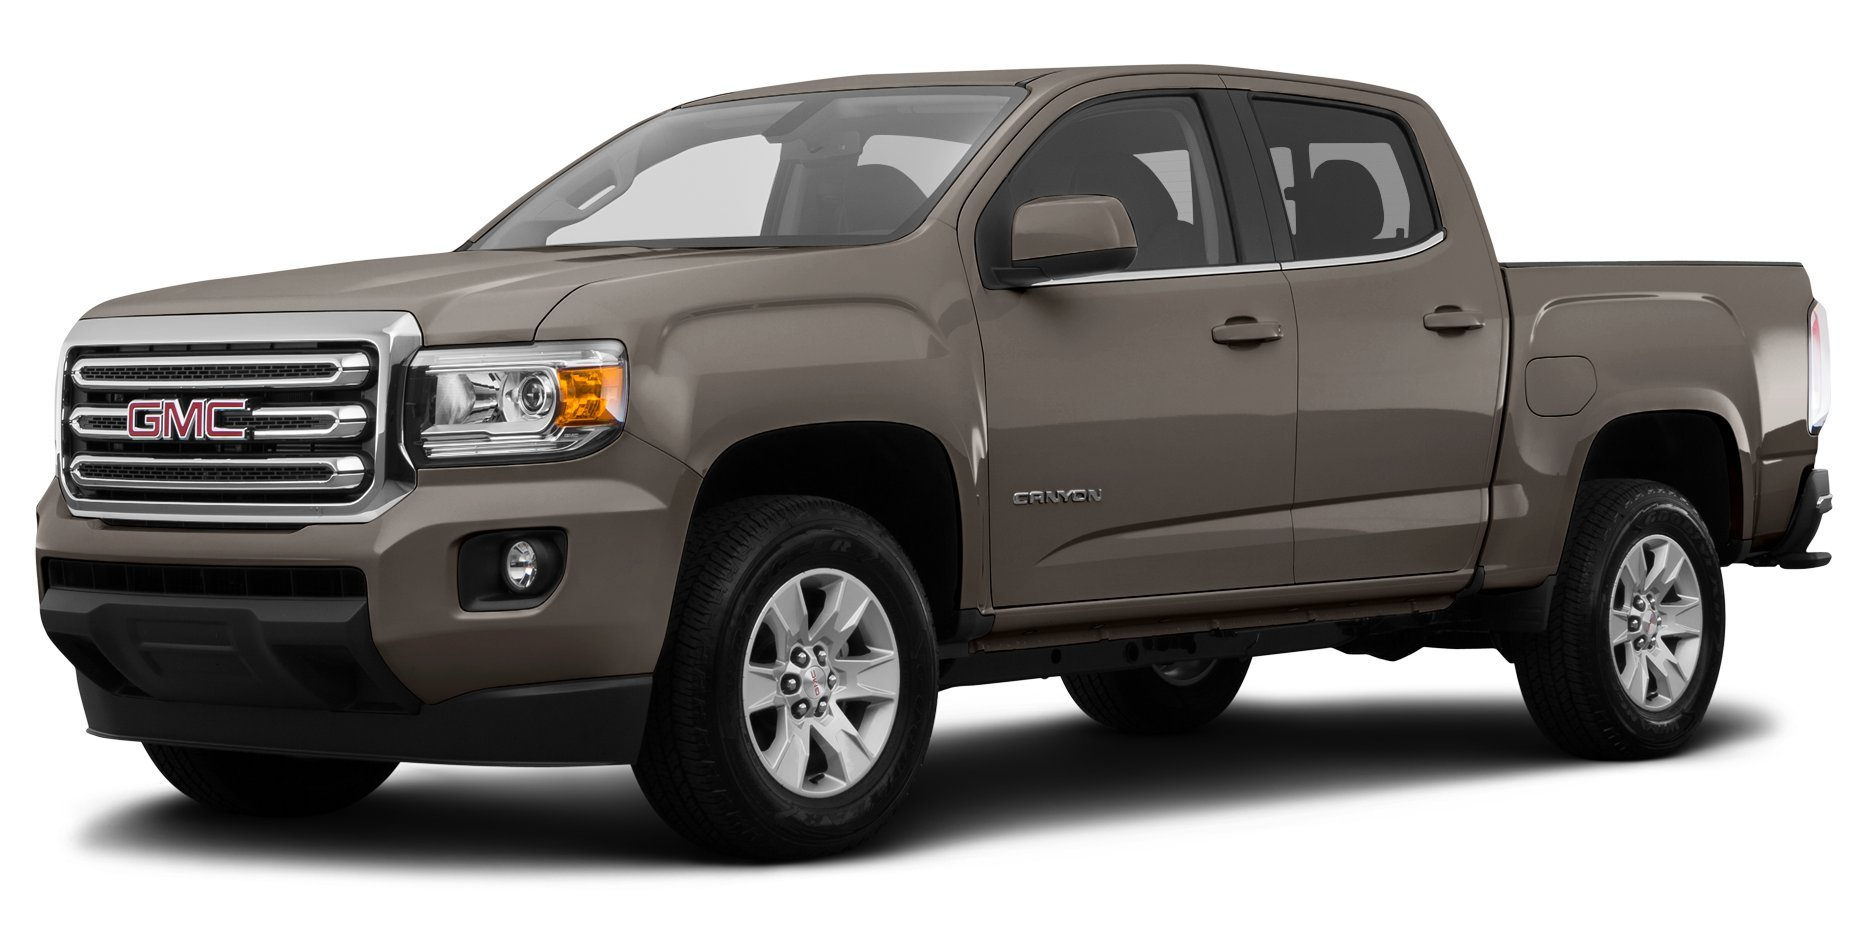 2017 gmc canyon reviews images and specs vehicles. Black Bedroom Furniture Sets. Home Design Ideas